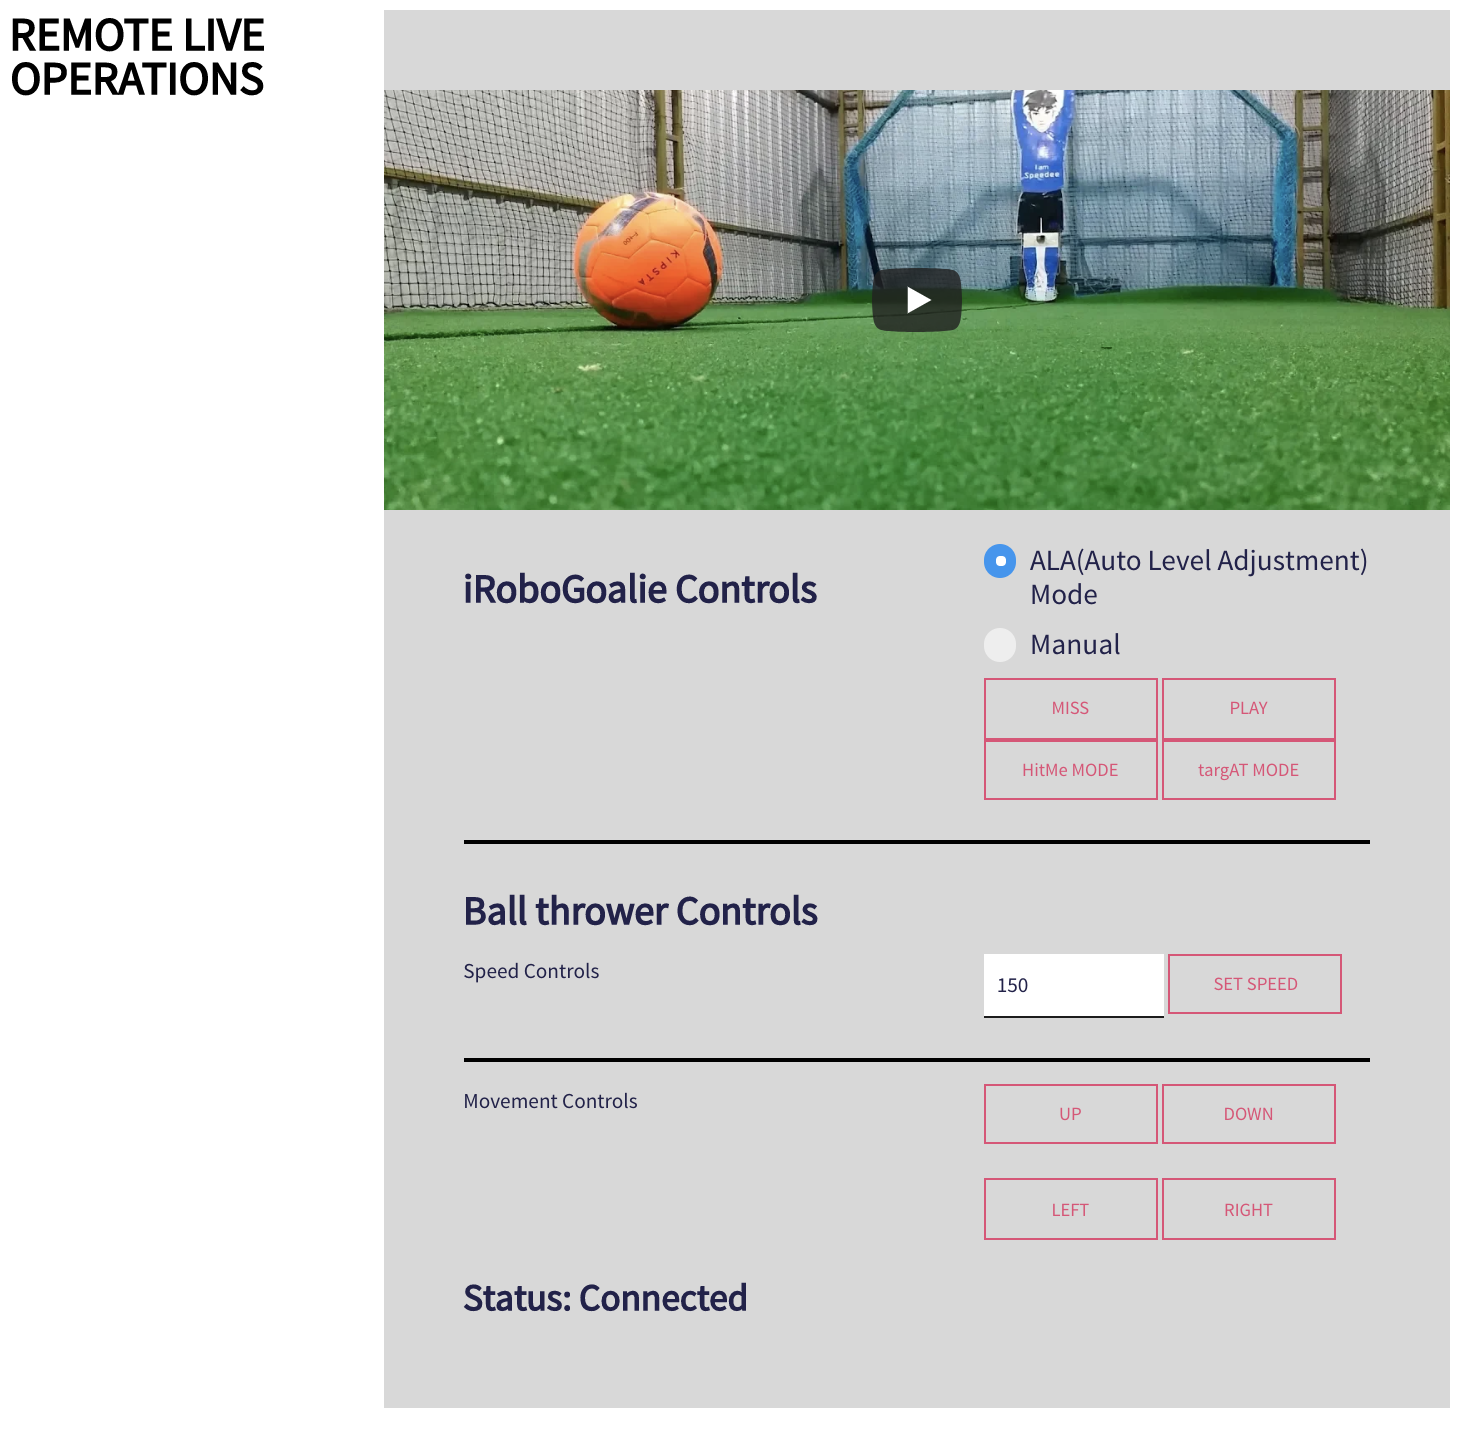 Robot Goal keeper Remote control live operations